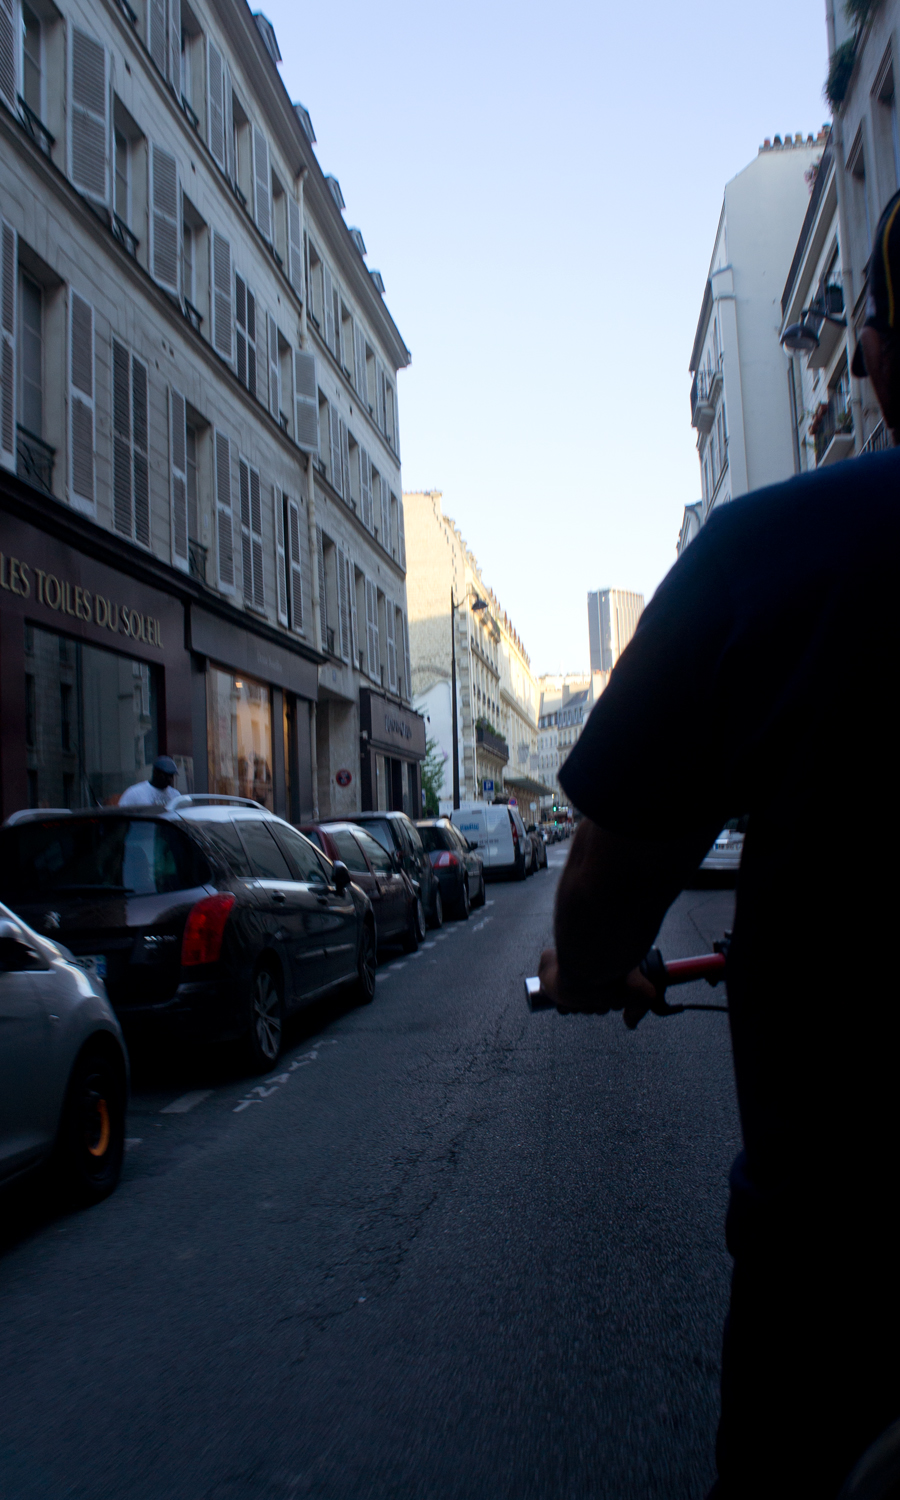 2014-bike-taxi-paris-france-01